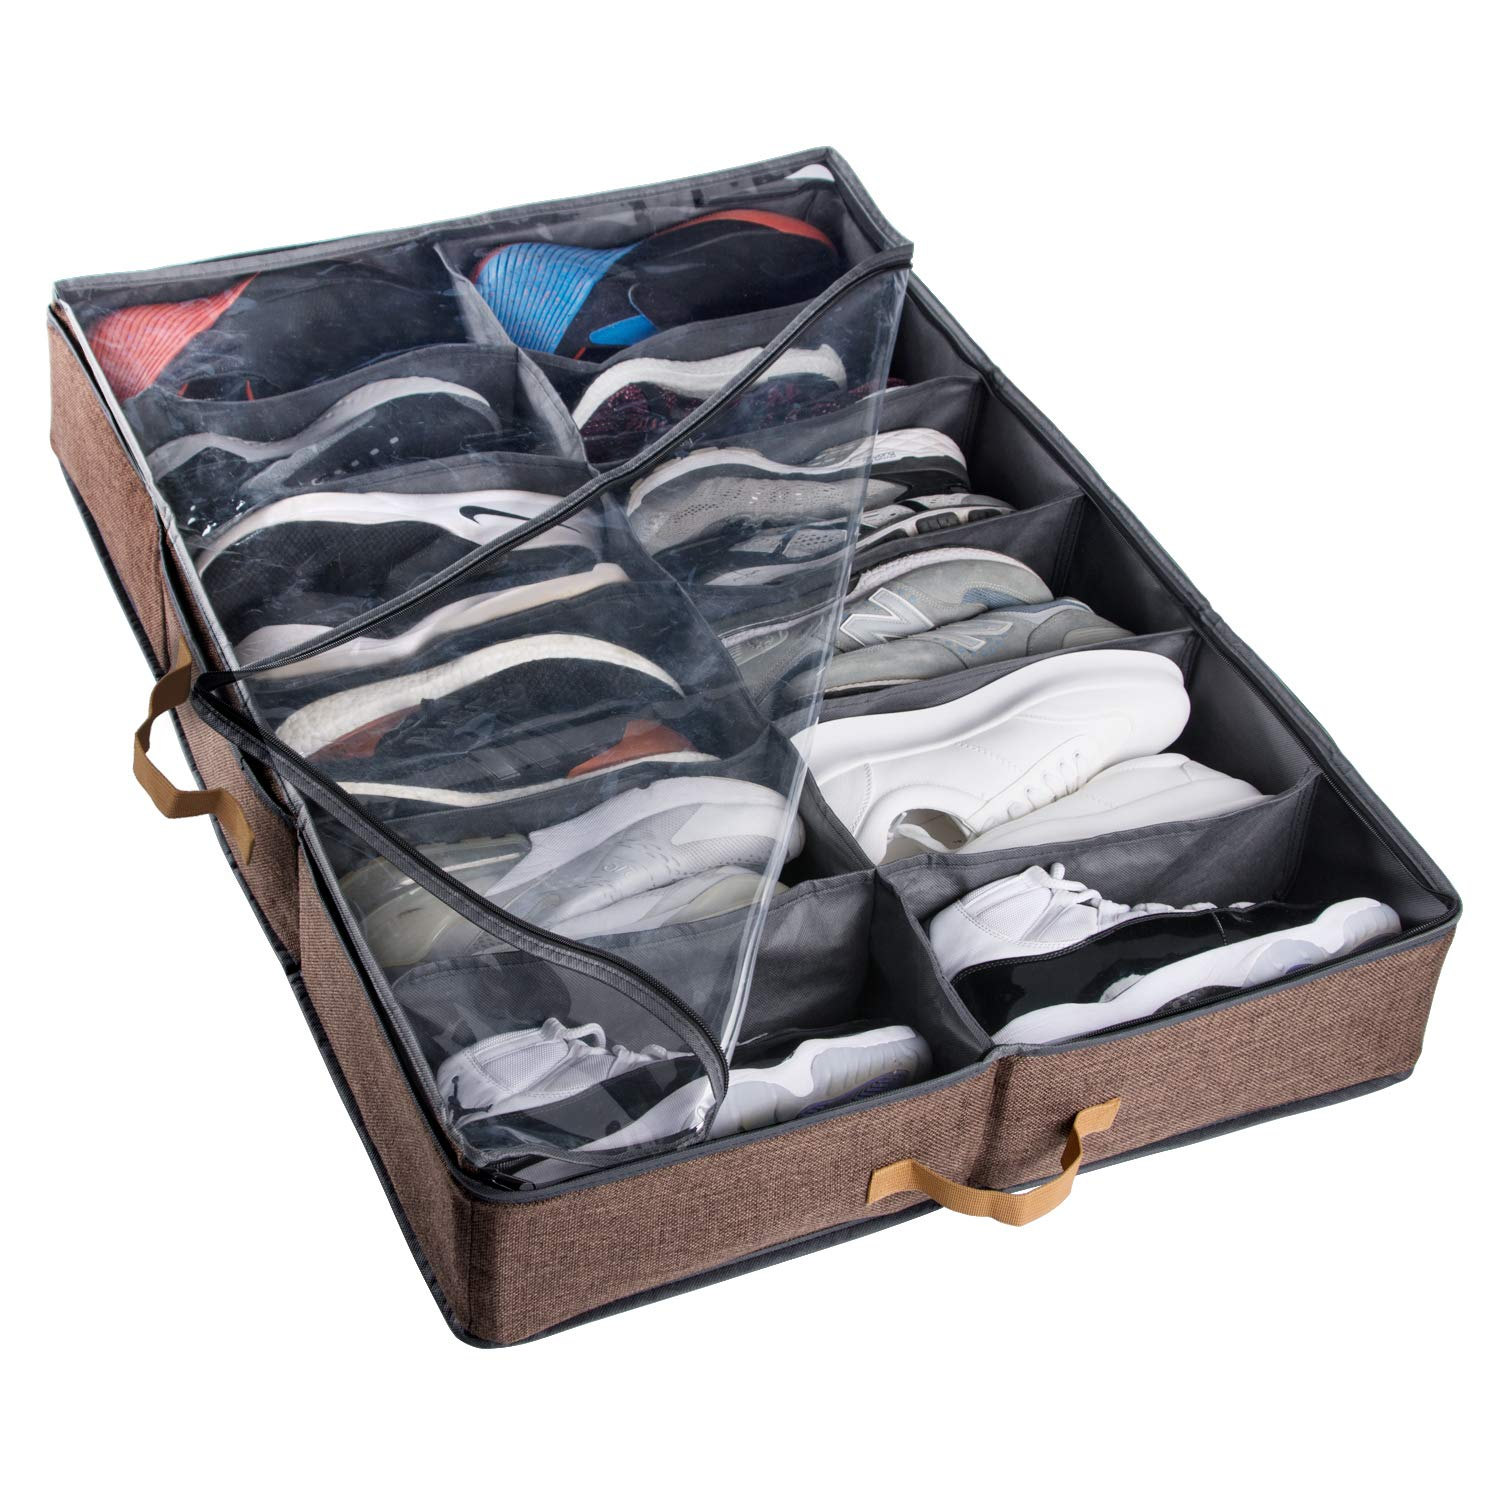 ACMETOP Extra-Large Under Bed Shoe Storage Organizer, Built-in Structure & Durable Materials, Underbed Storage Solution for Men's Size 13 Sneaker & Women's 6'' High-Heels (12 Cell, Brown) by ACMETOP